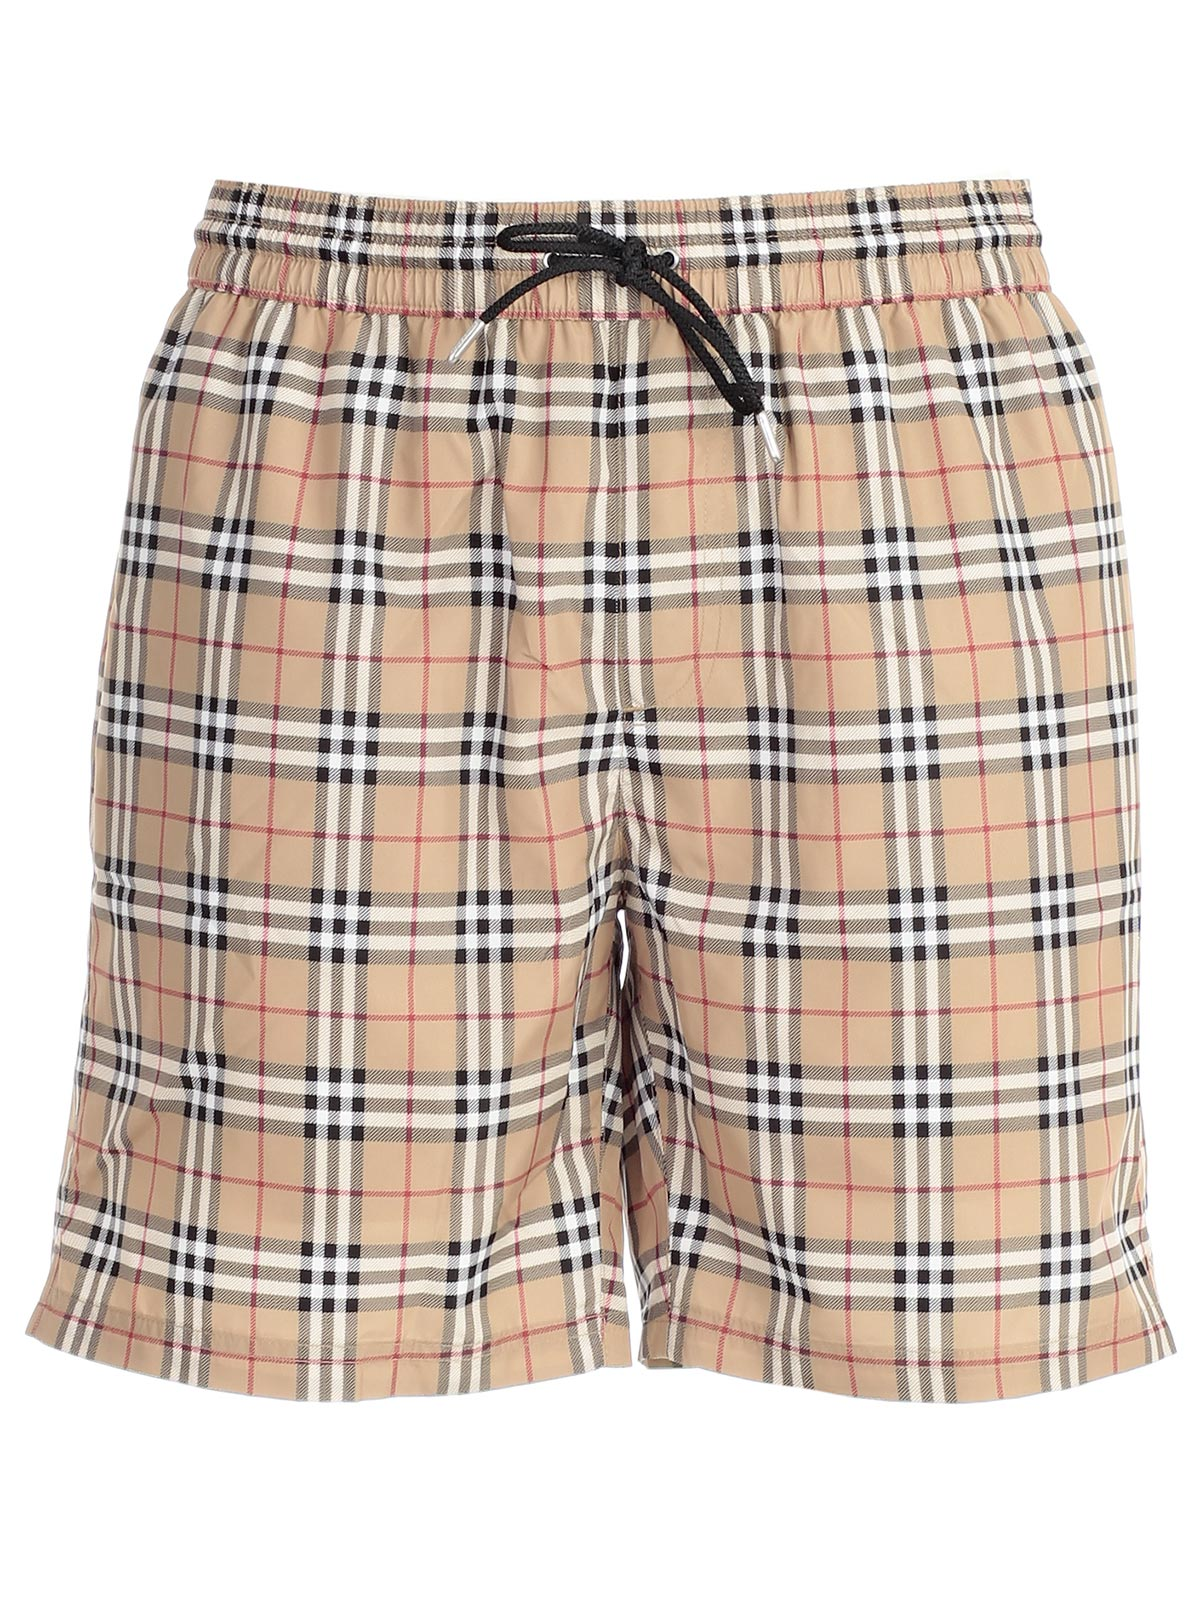 Picture of Burberry Trunks